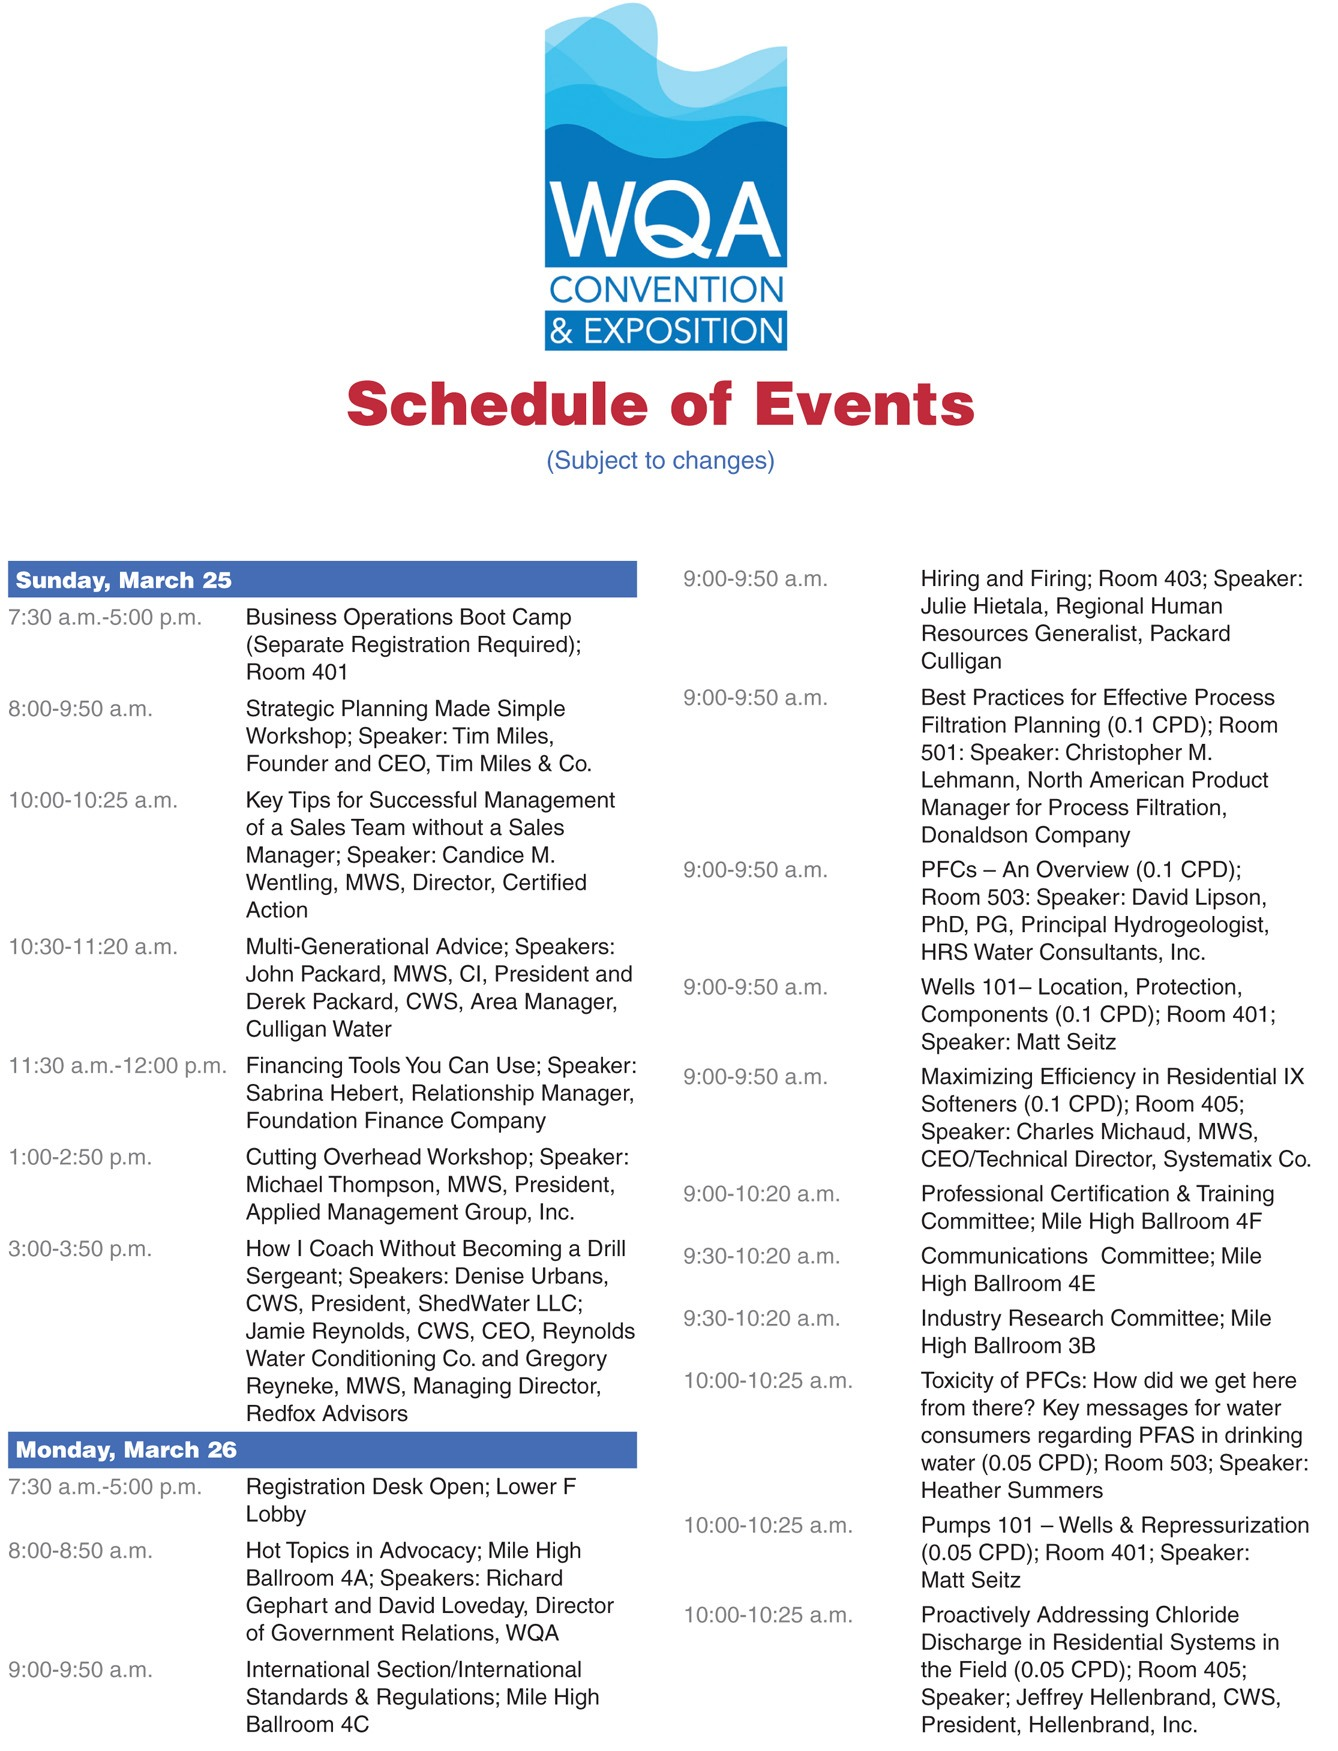 Wqa 2018 convention schedule of events wcp online wqa 2018 convention schedule of events 1betcityfo Choice Image